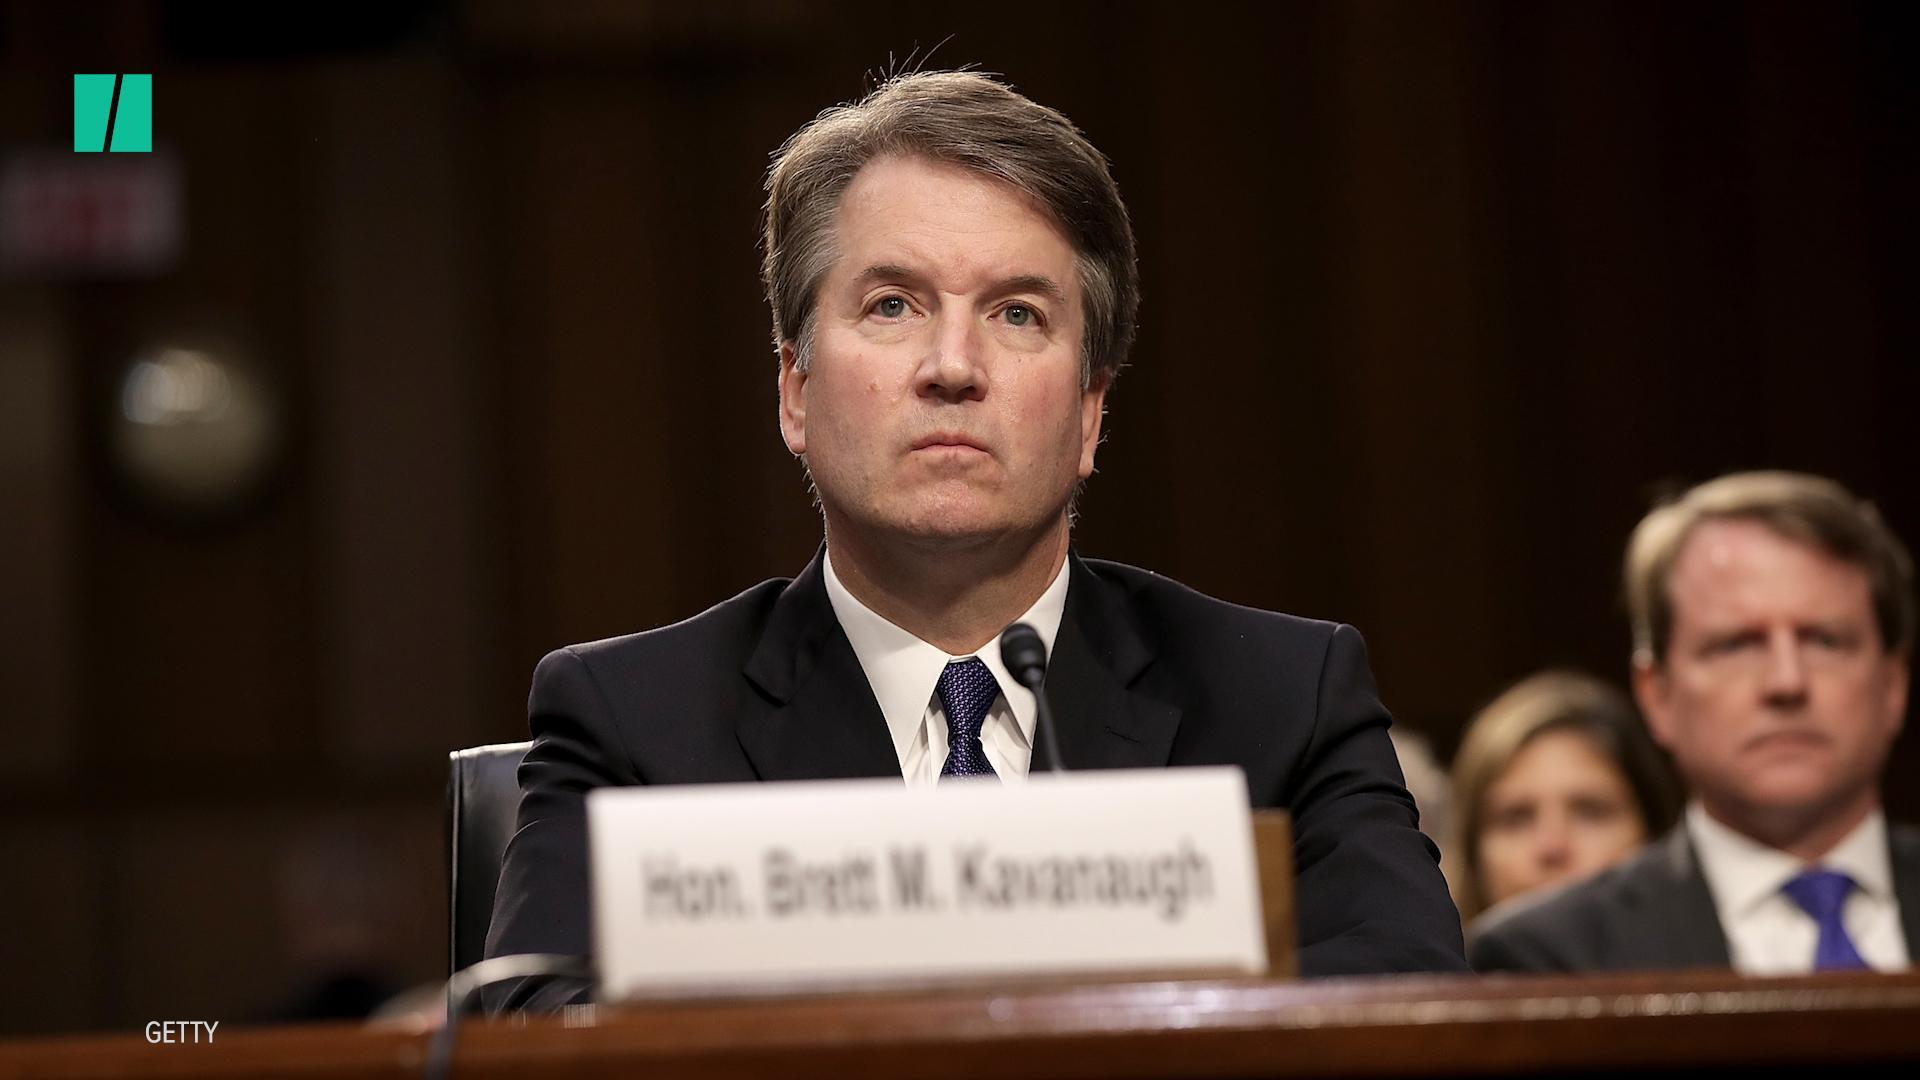 White House Responds To Second Kavanaugh Accuser By Attacking Alleged Victim